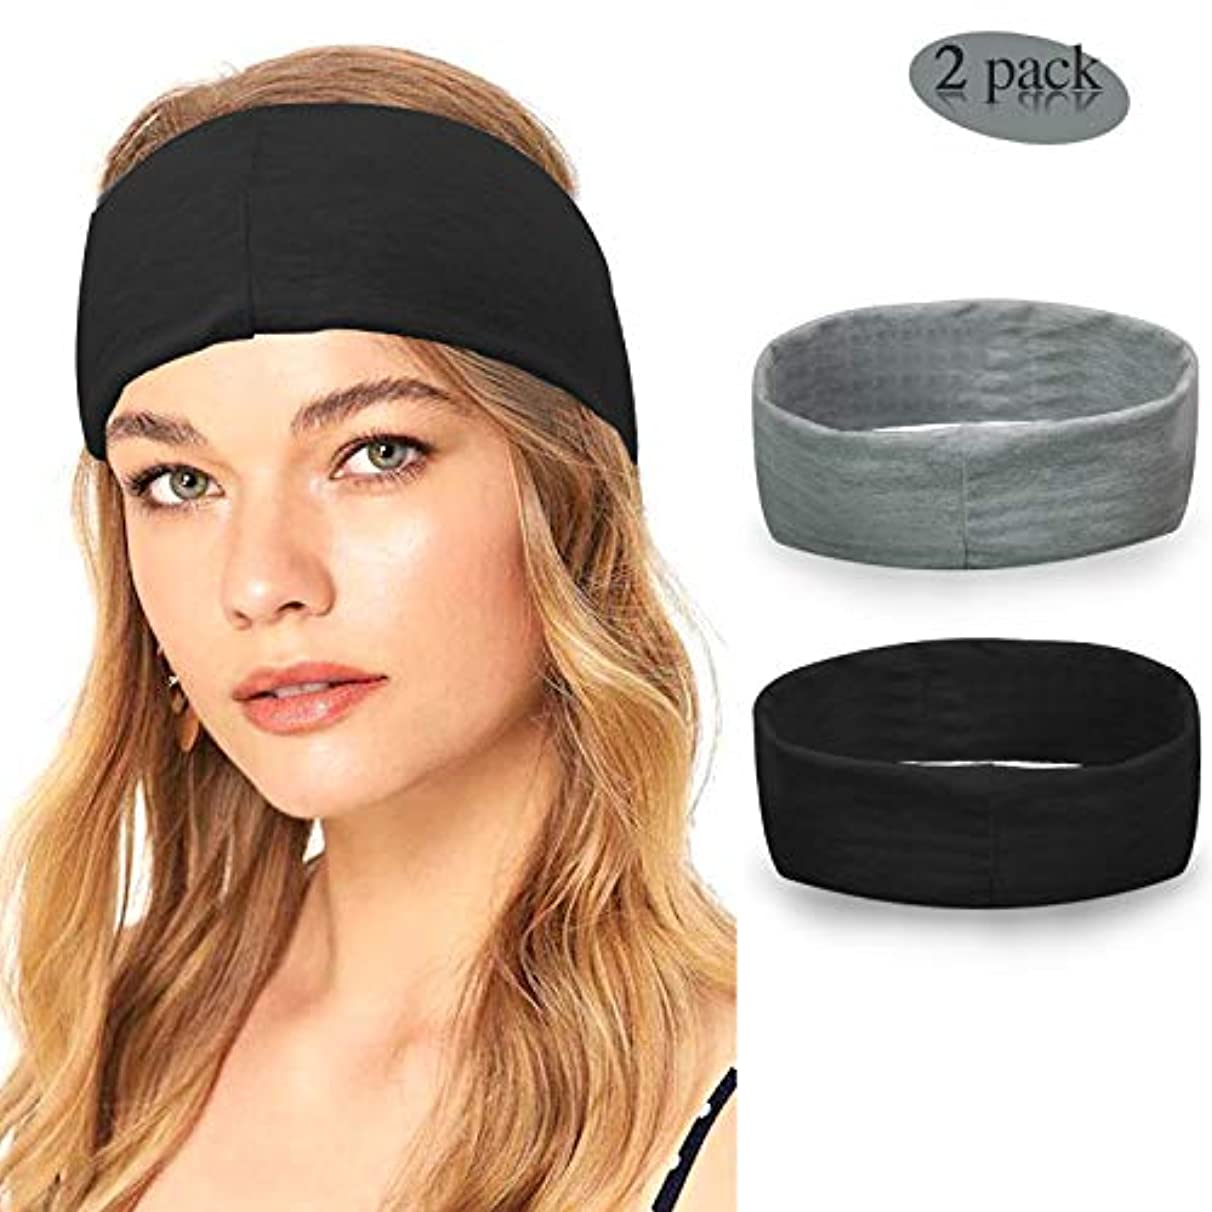 ELUTONG Womens Sport Wide Headband 2 Pack Stretchy Headwraps Hair Band for Yoga Running Workout